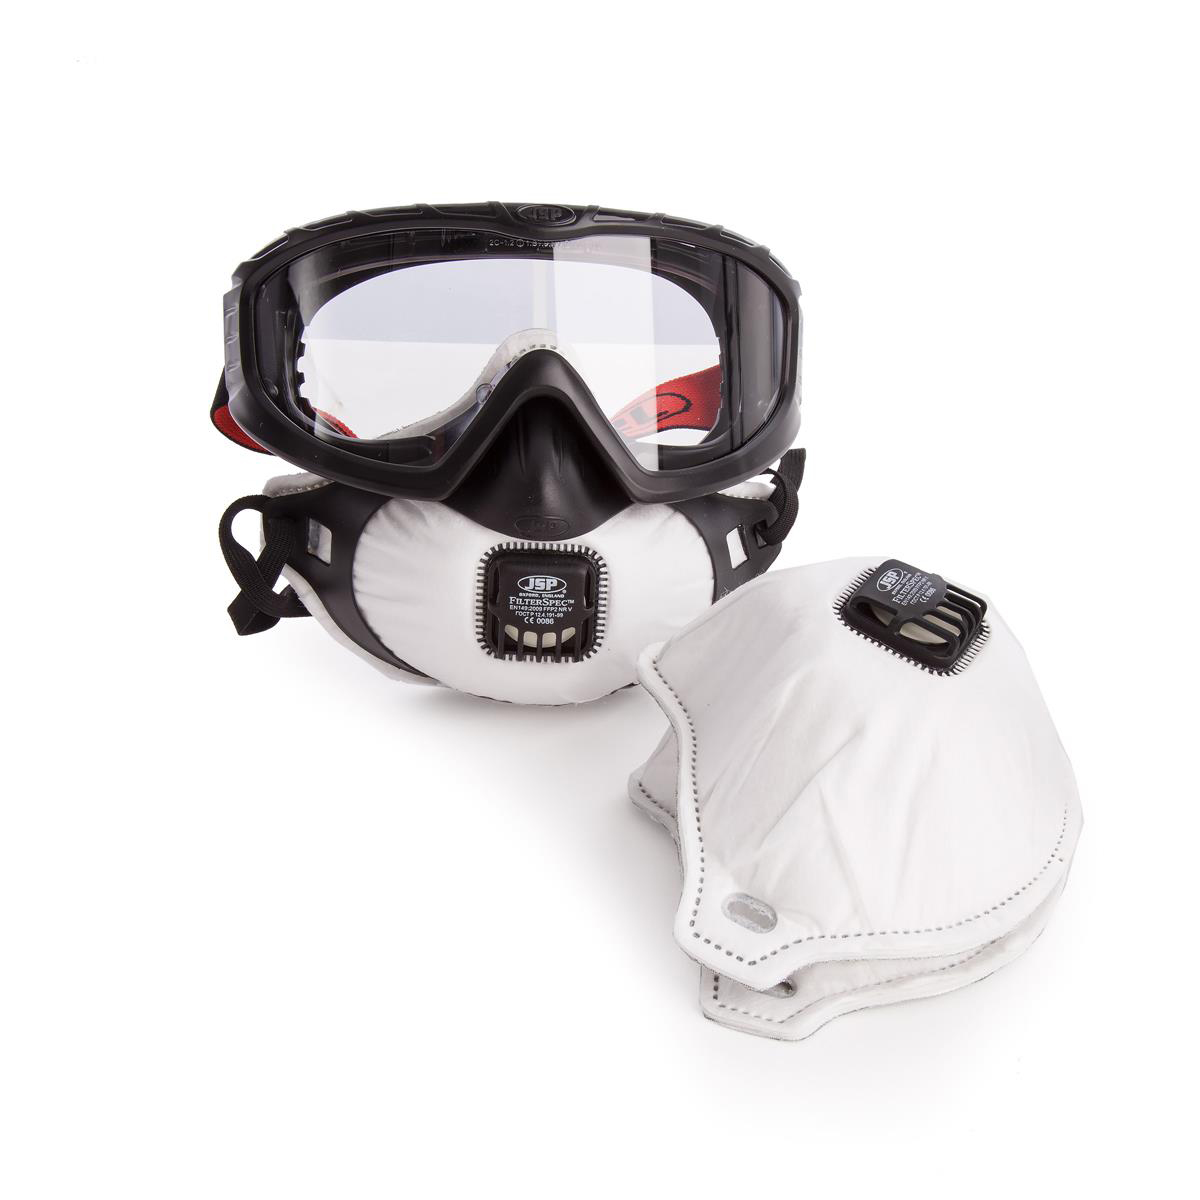 JSP FilterSpec Pro FMP2 Safety Goggle Mask Anti-scatch Black/ClearRef AGE120-201-100